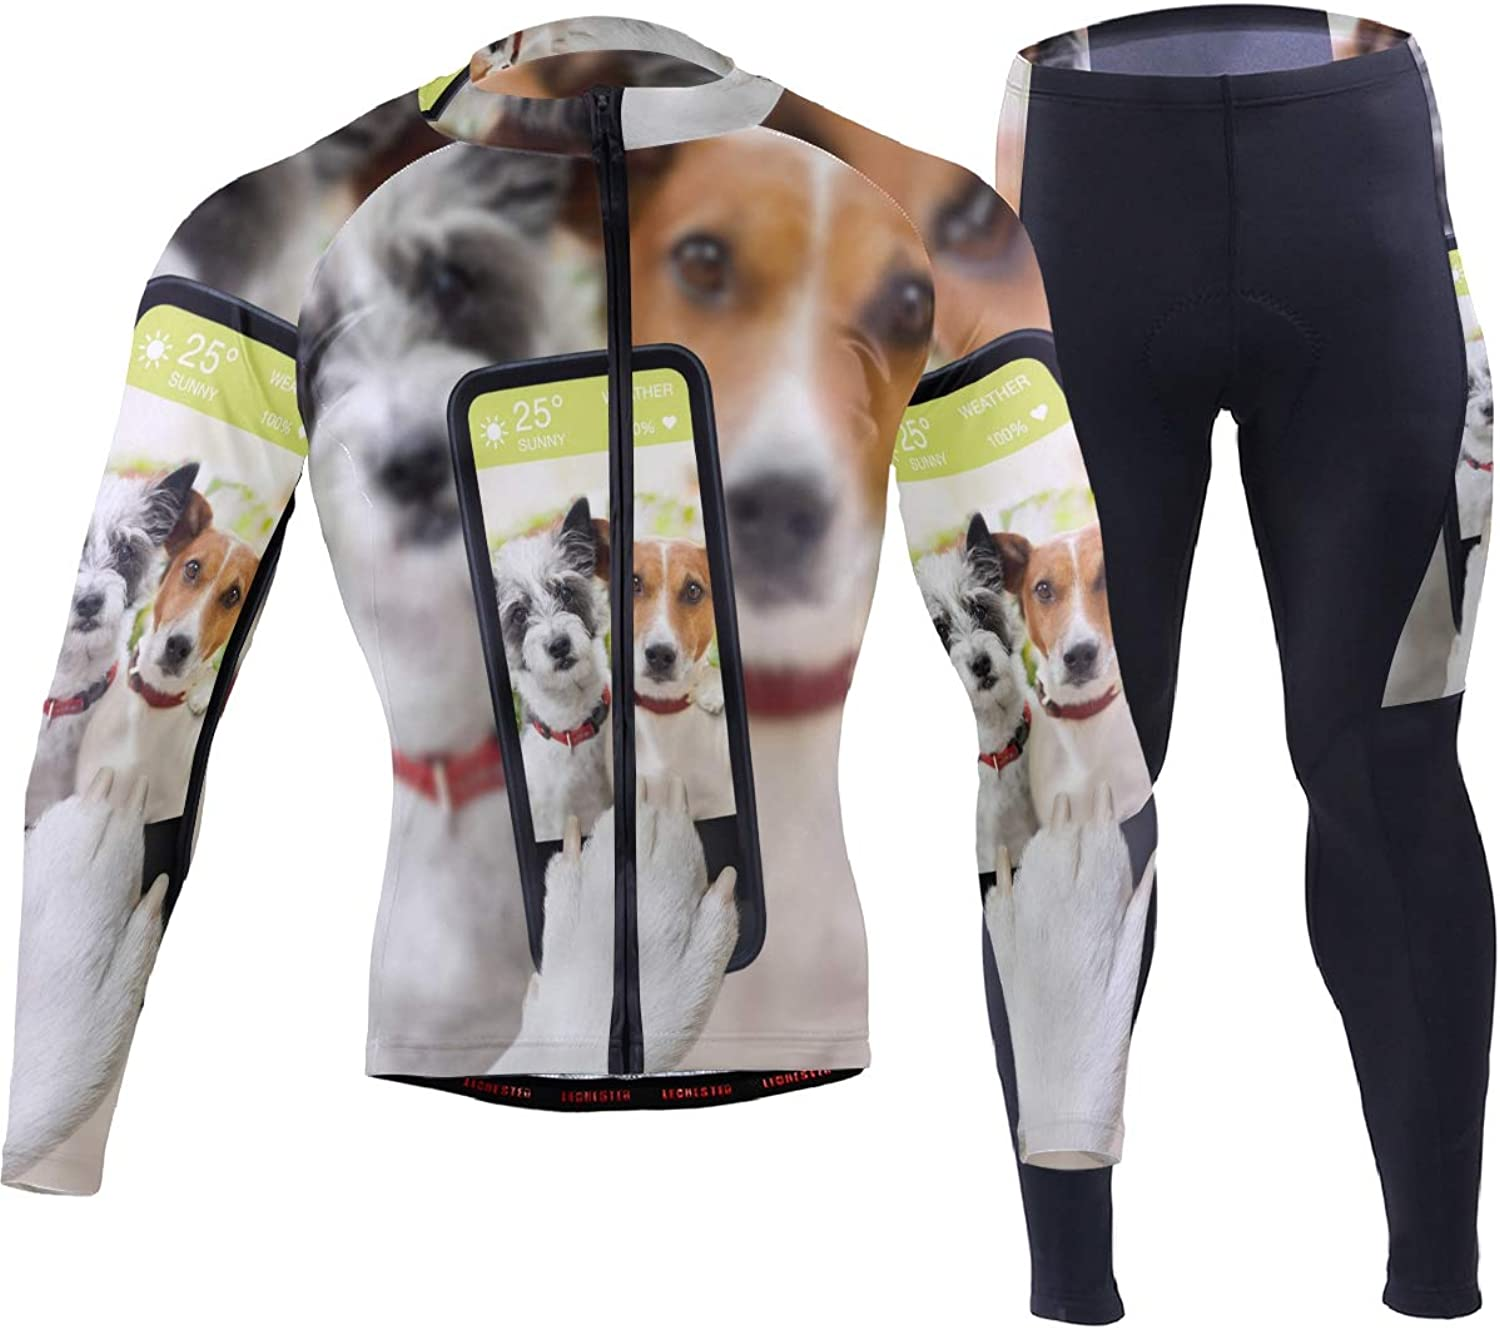 FAJRO Selfie Dogs Sportswear Suit Bike Outfit Set Breathable Quick Dry 3D Padded Pants